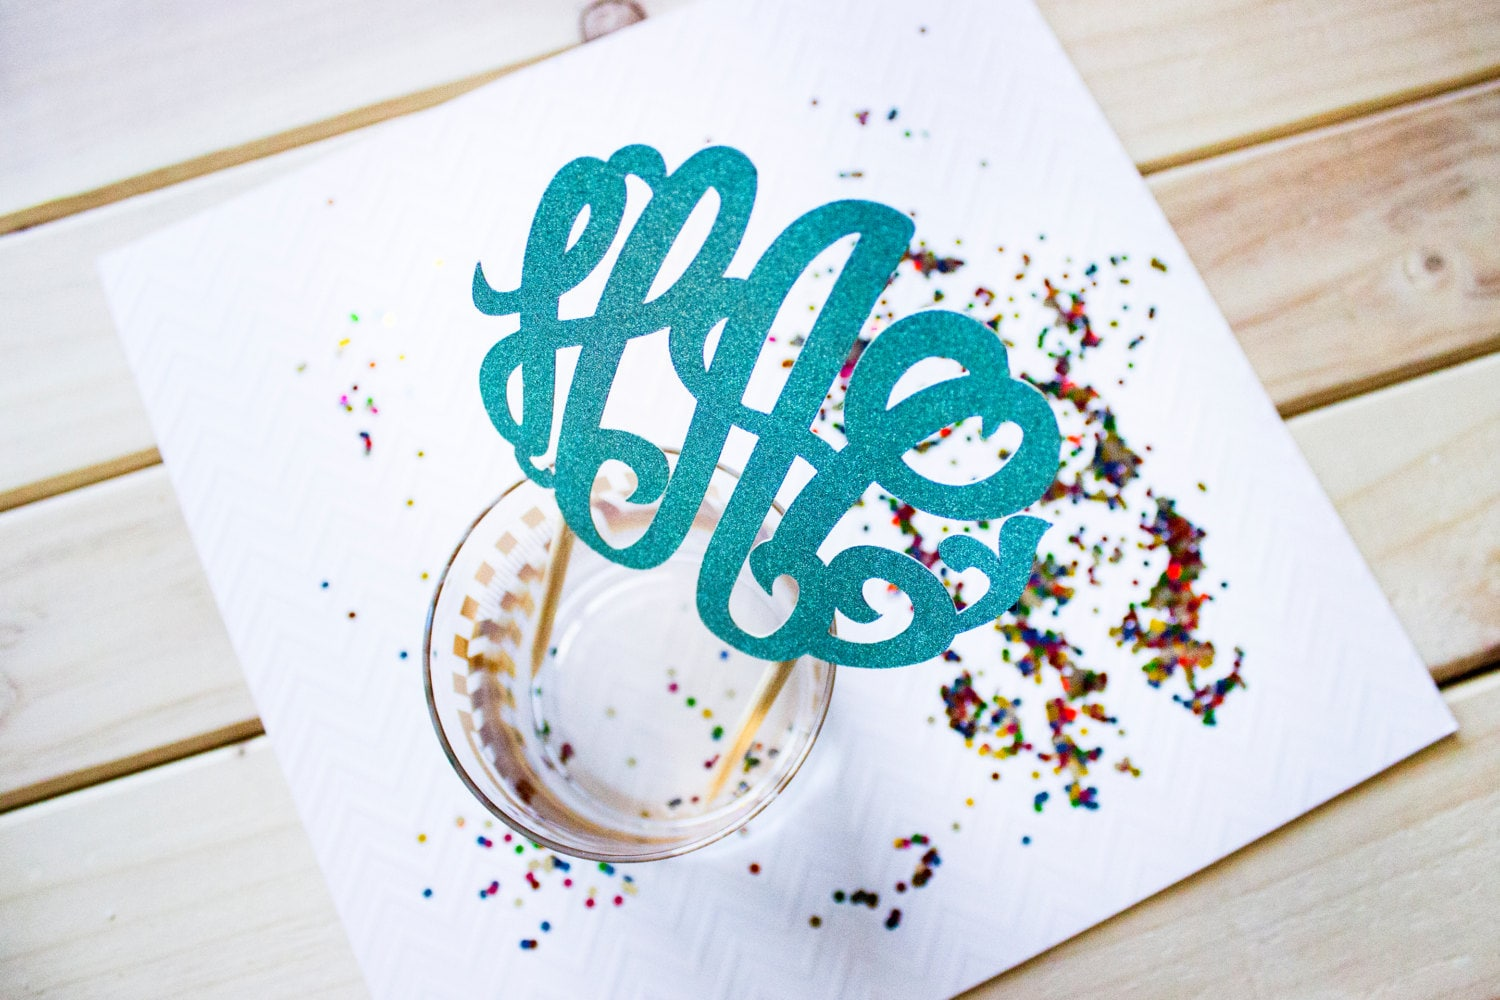 Cake Decor Glitter : Custom Glitter Monogram Cake Topper // Monogram Party Decor